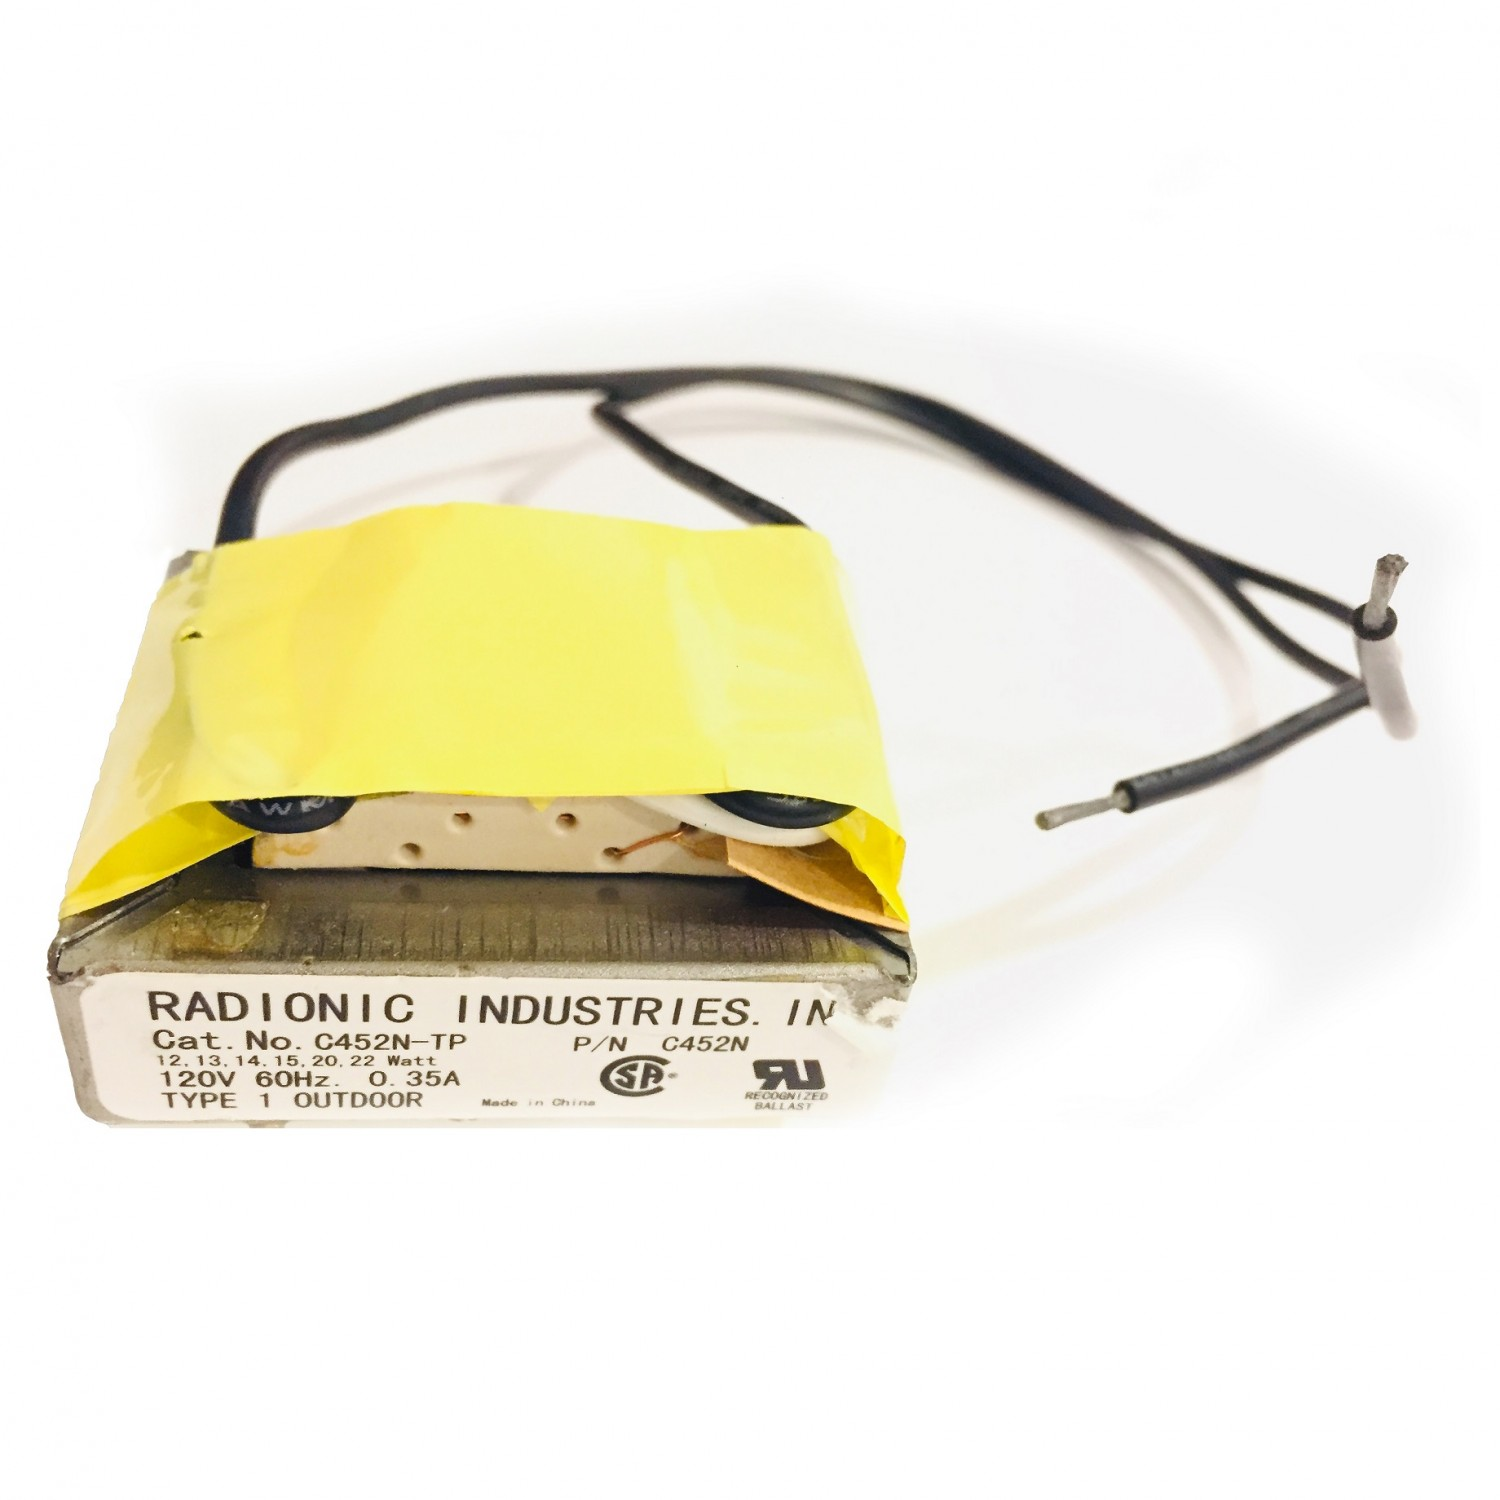 Luxo Radionic Lighting Ballast 34828, Front View